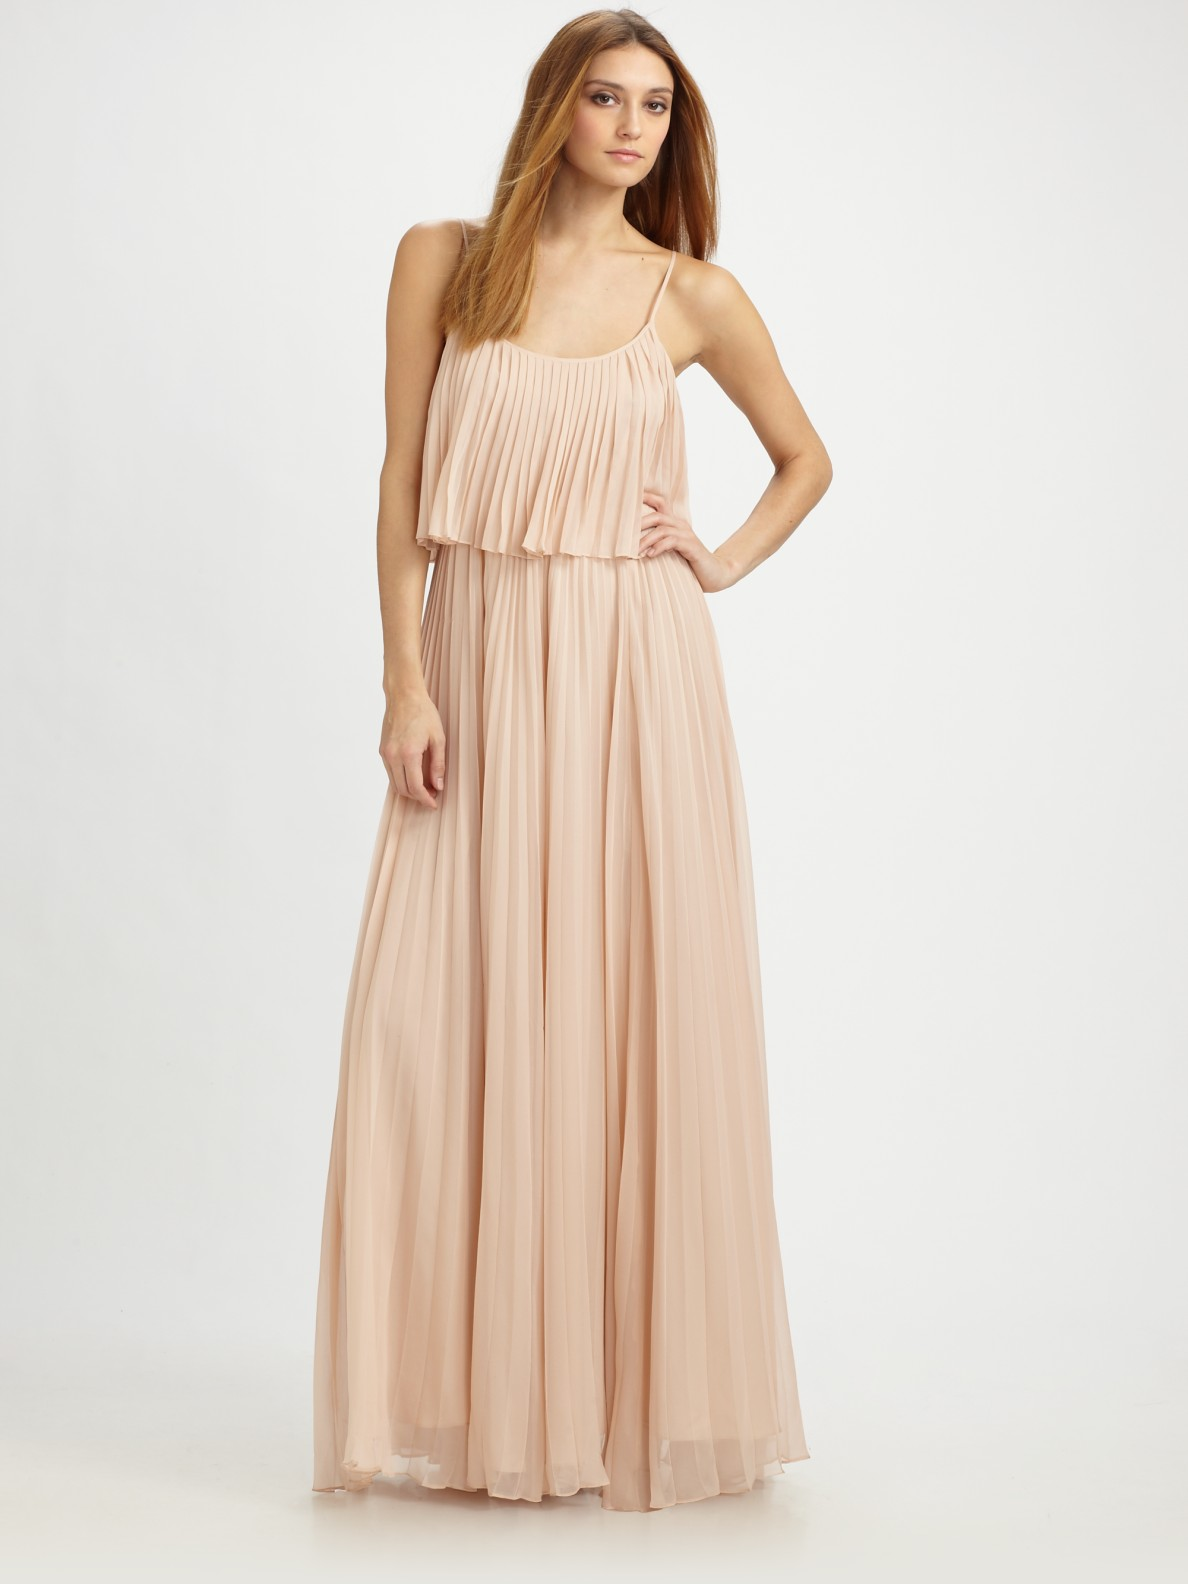 How to maxi wear pleated chiffon skirt advise to wear in spring in 2019